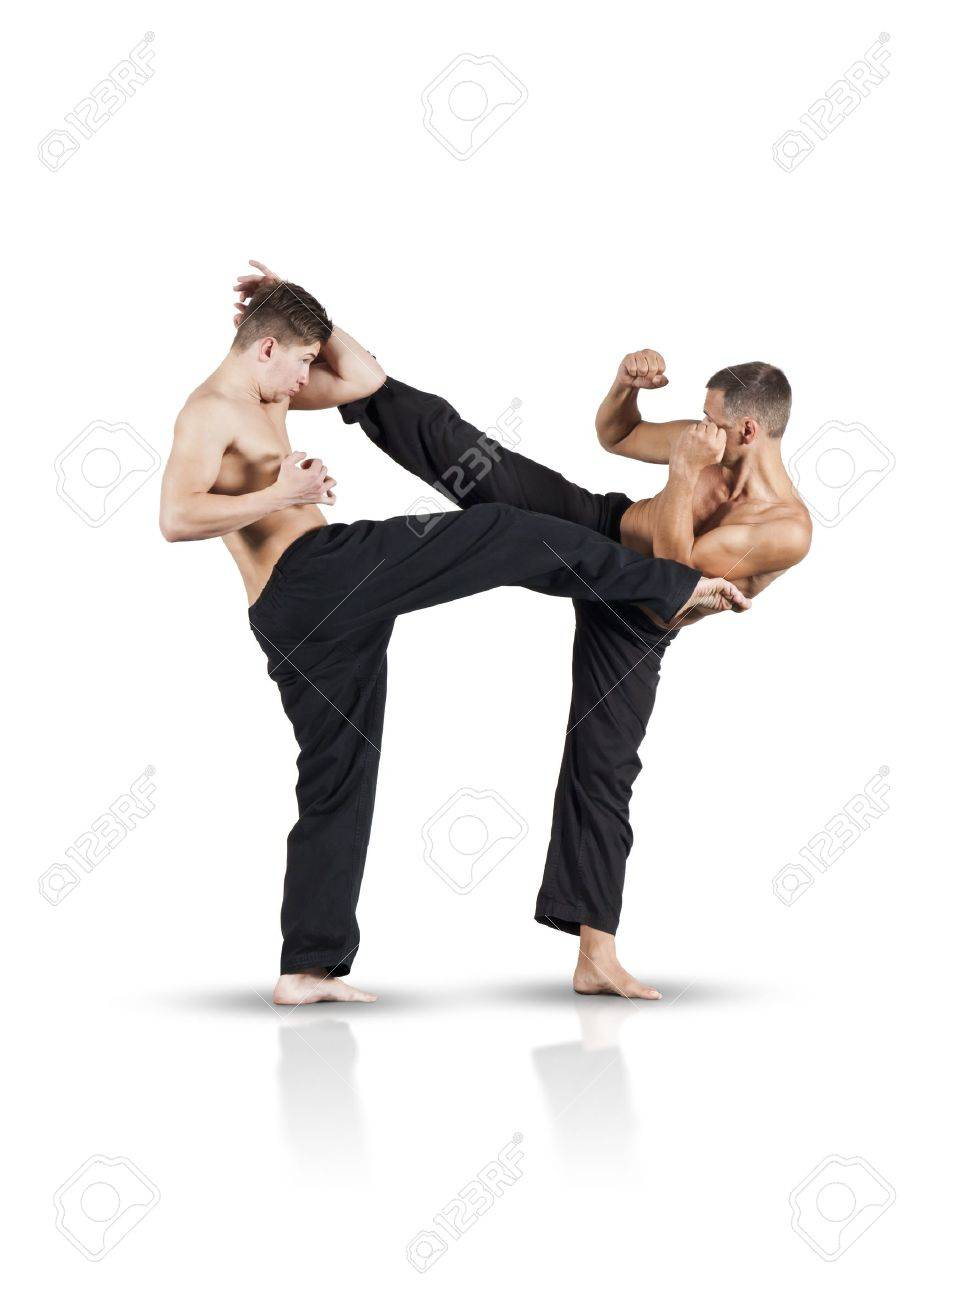 An image of two fighting men isolated on white background Stock Photo - 10421386